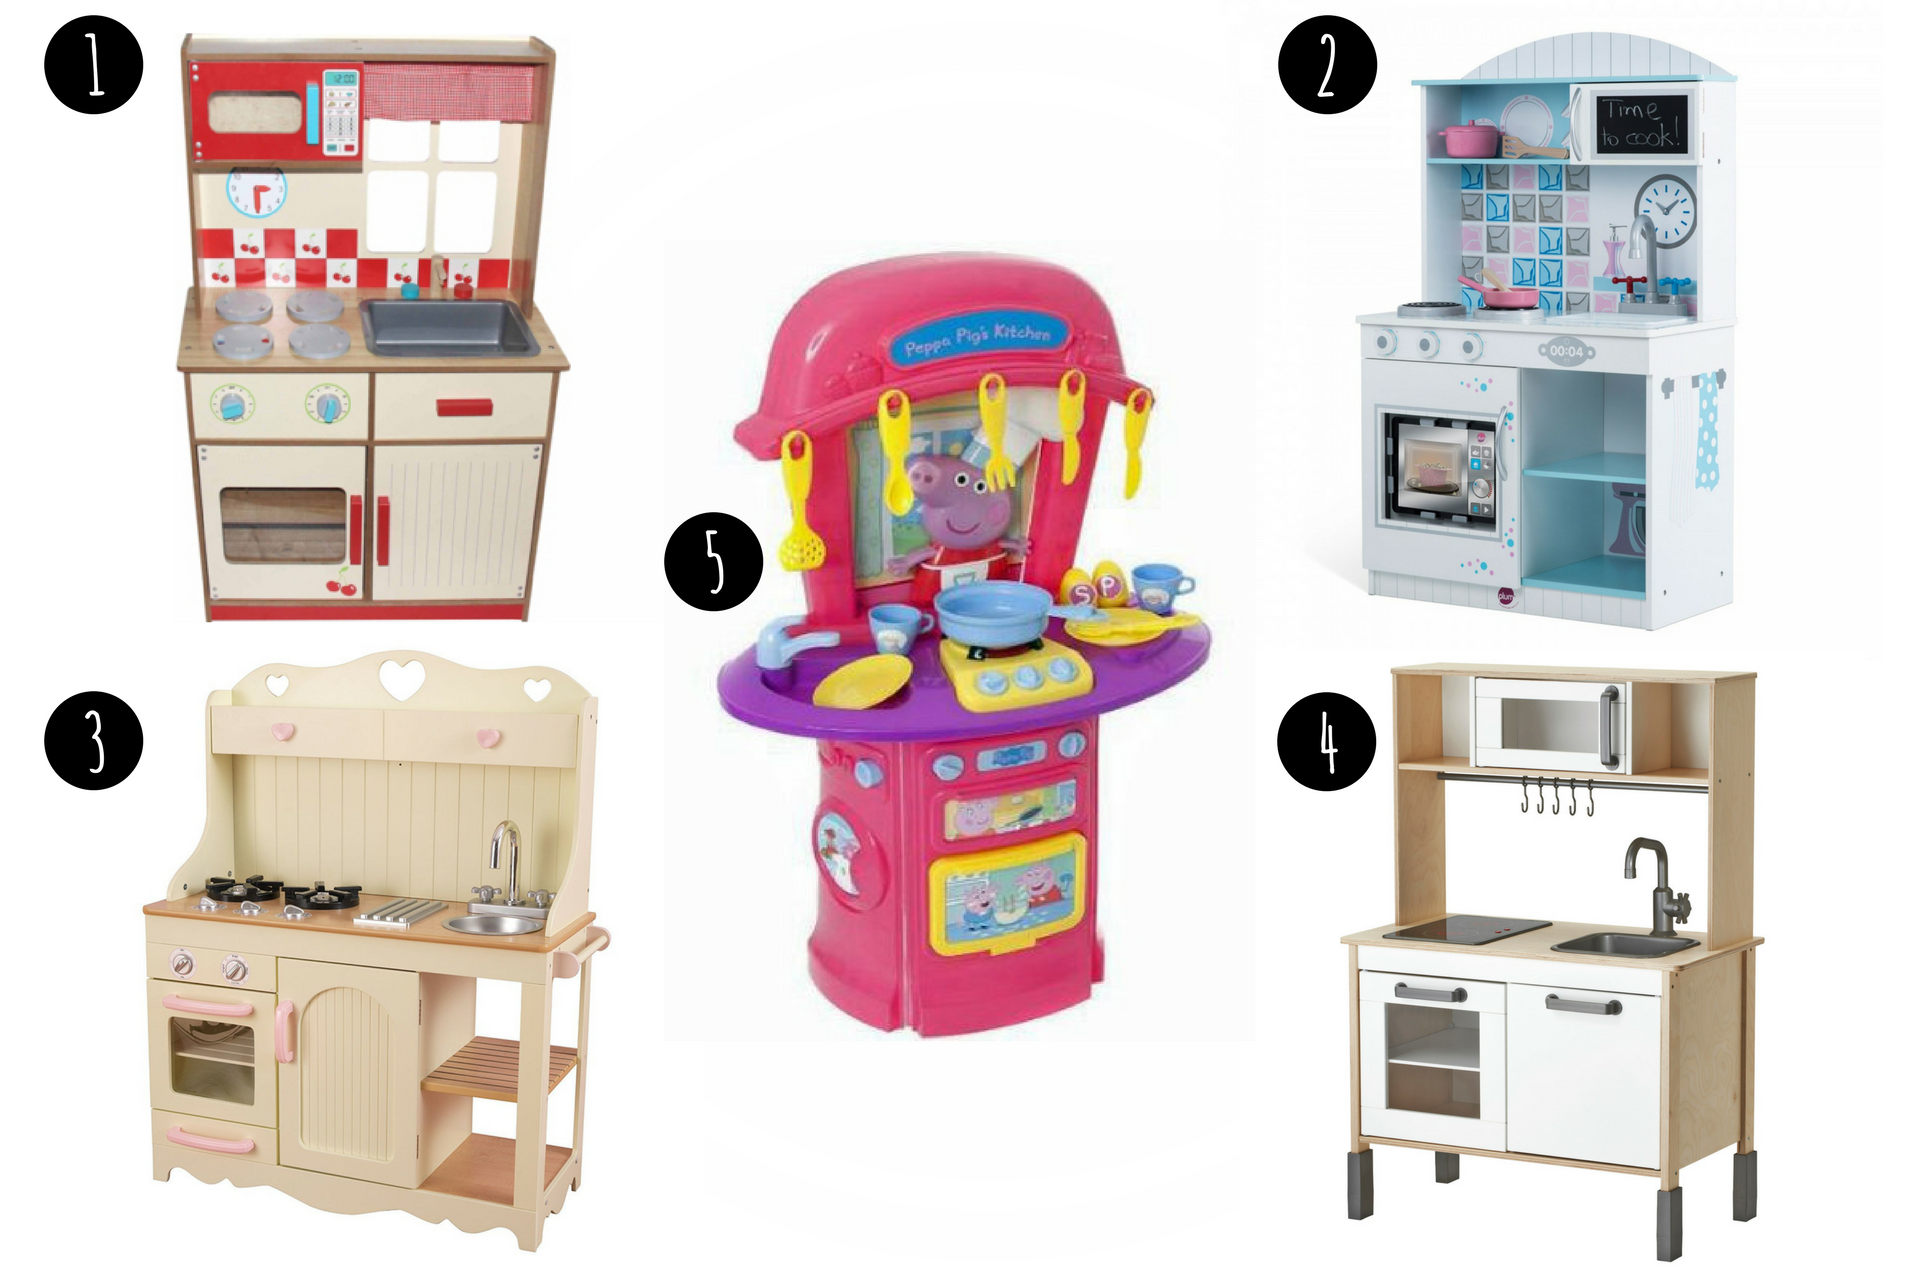 Toy Kitchens for Toddlers 5 Top Picks from Mums